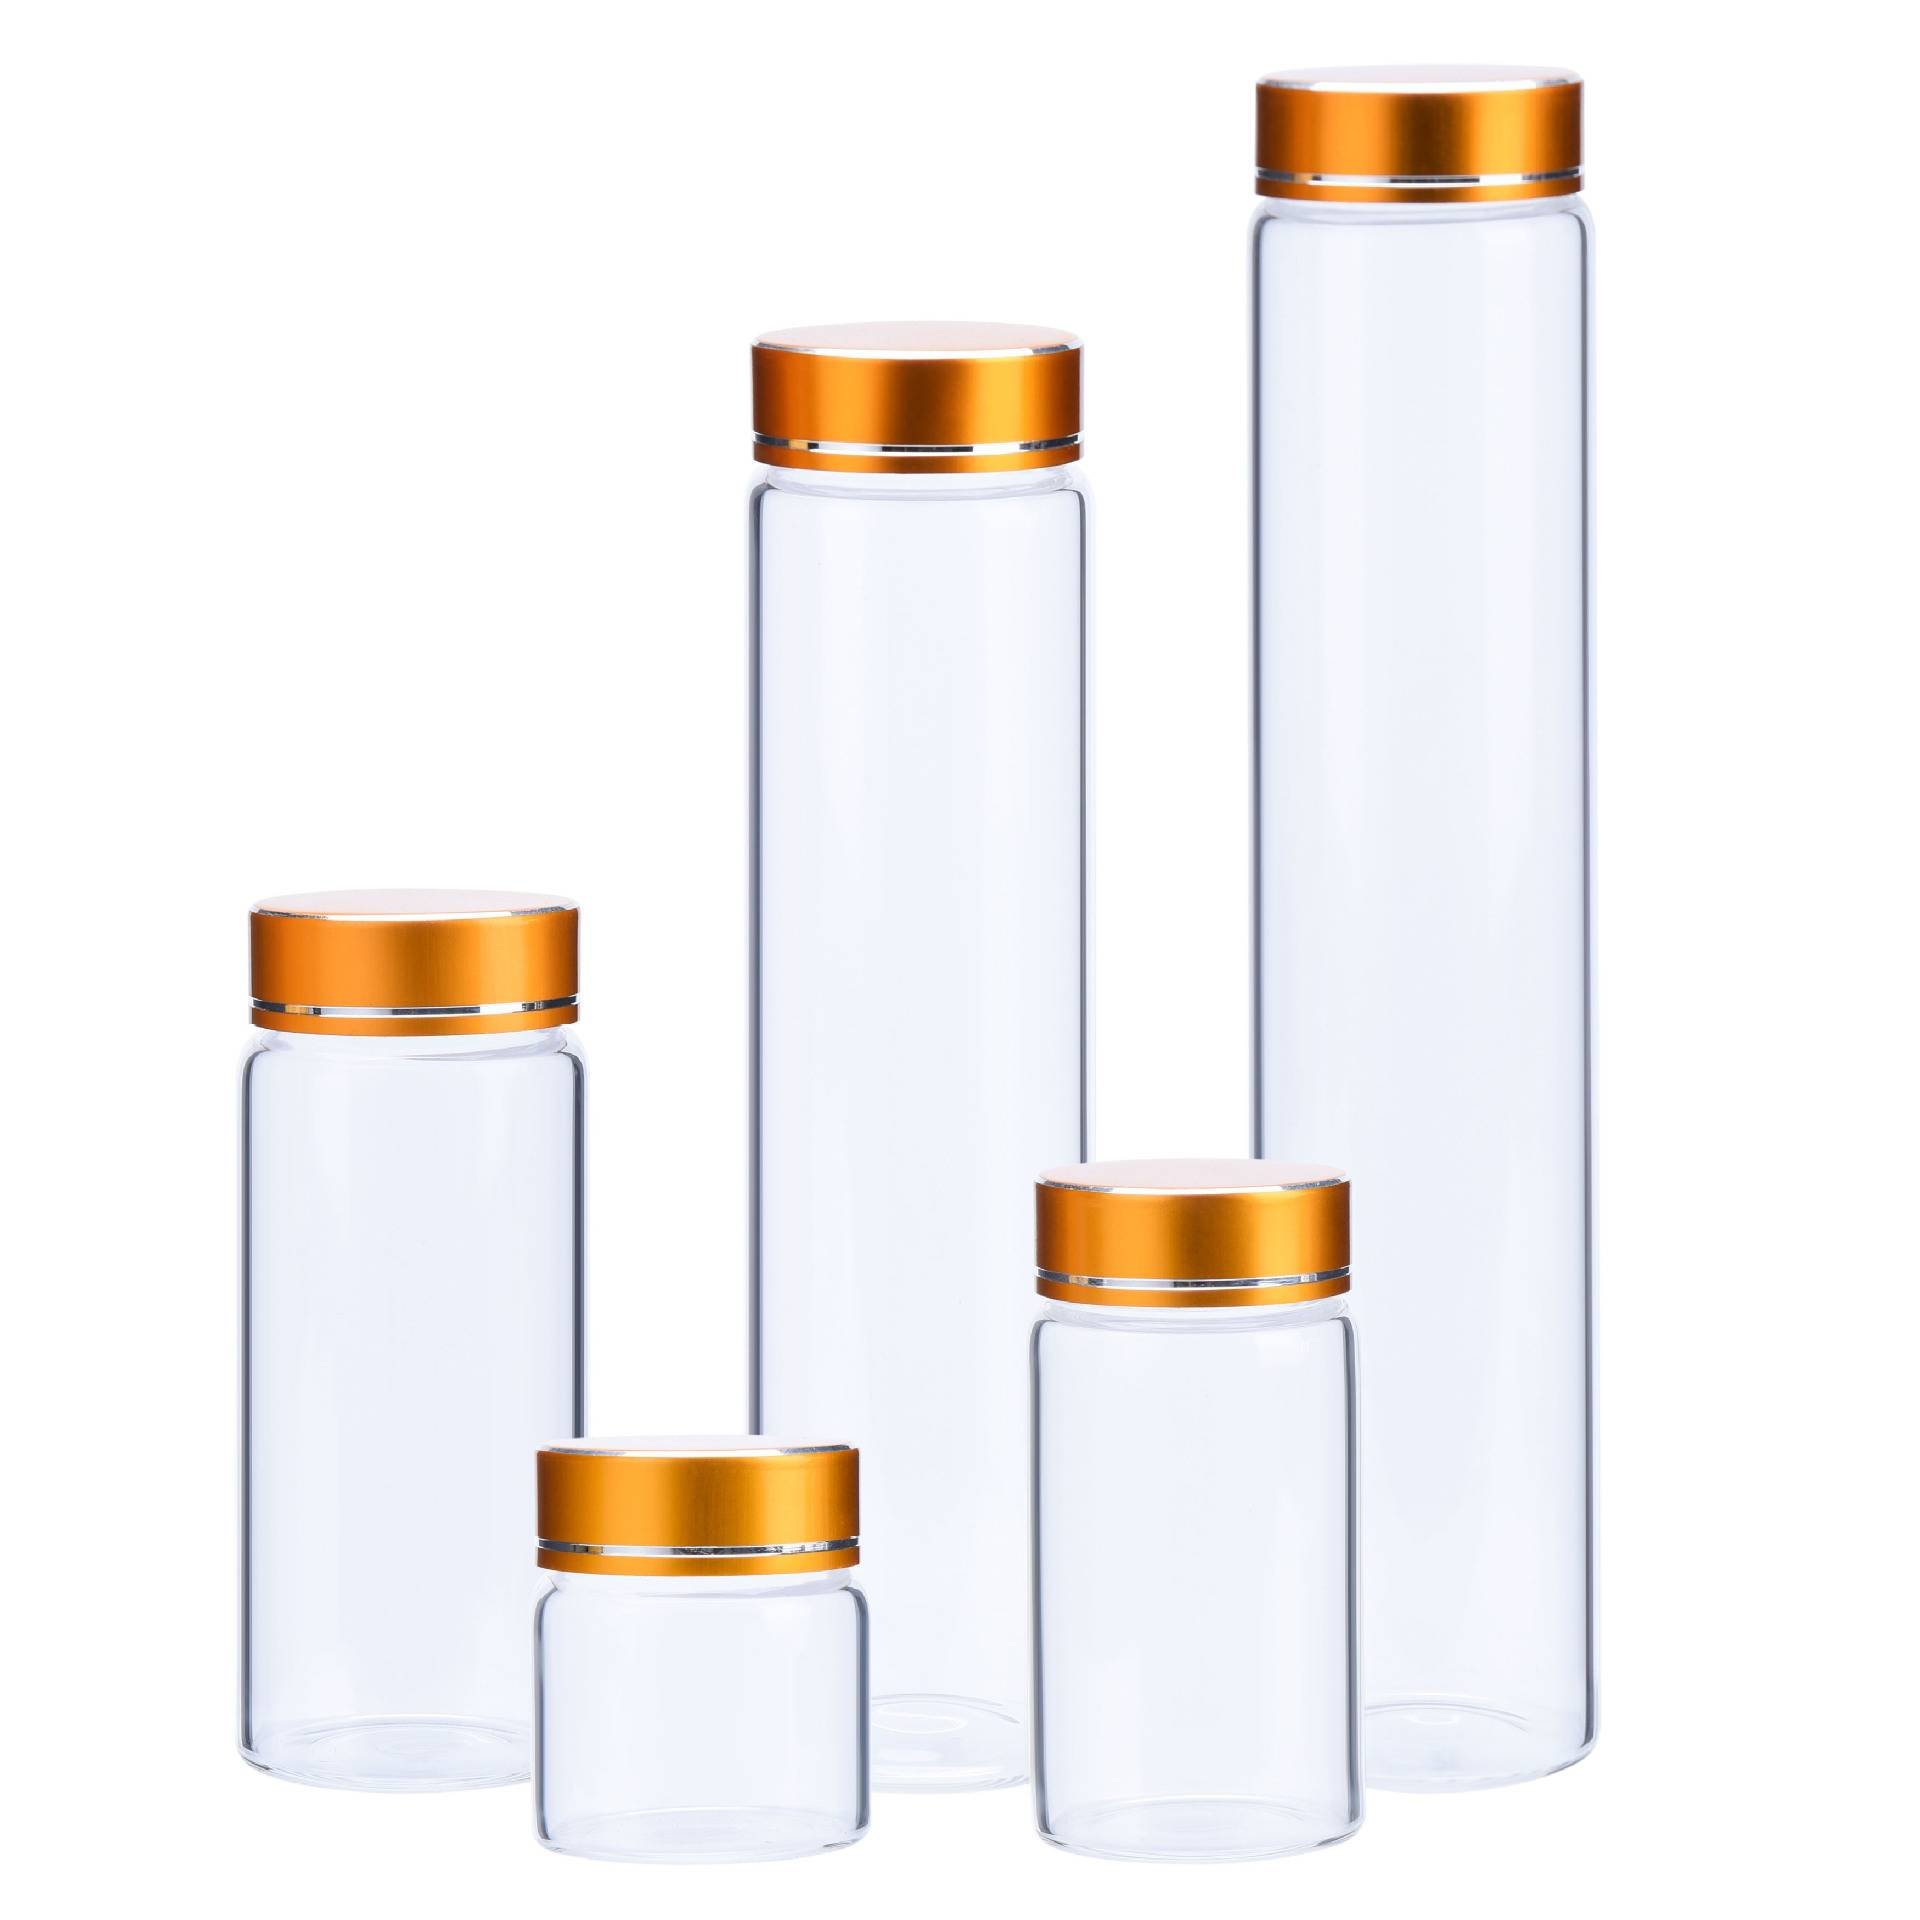 Diameter 37mm high borosilicate glass bottle with gold / blue aluminum cap Featured Image